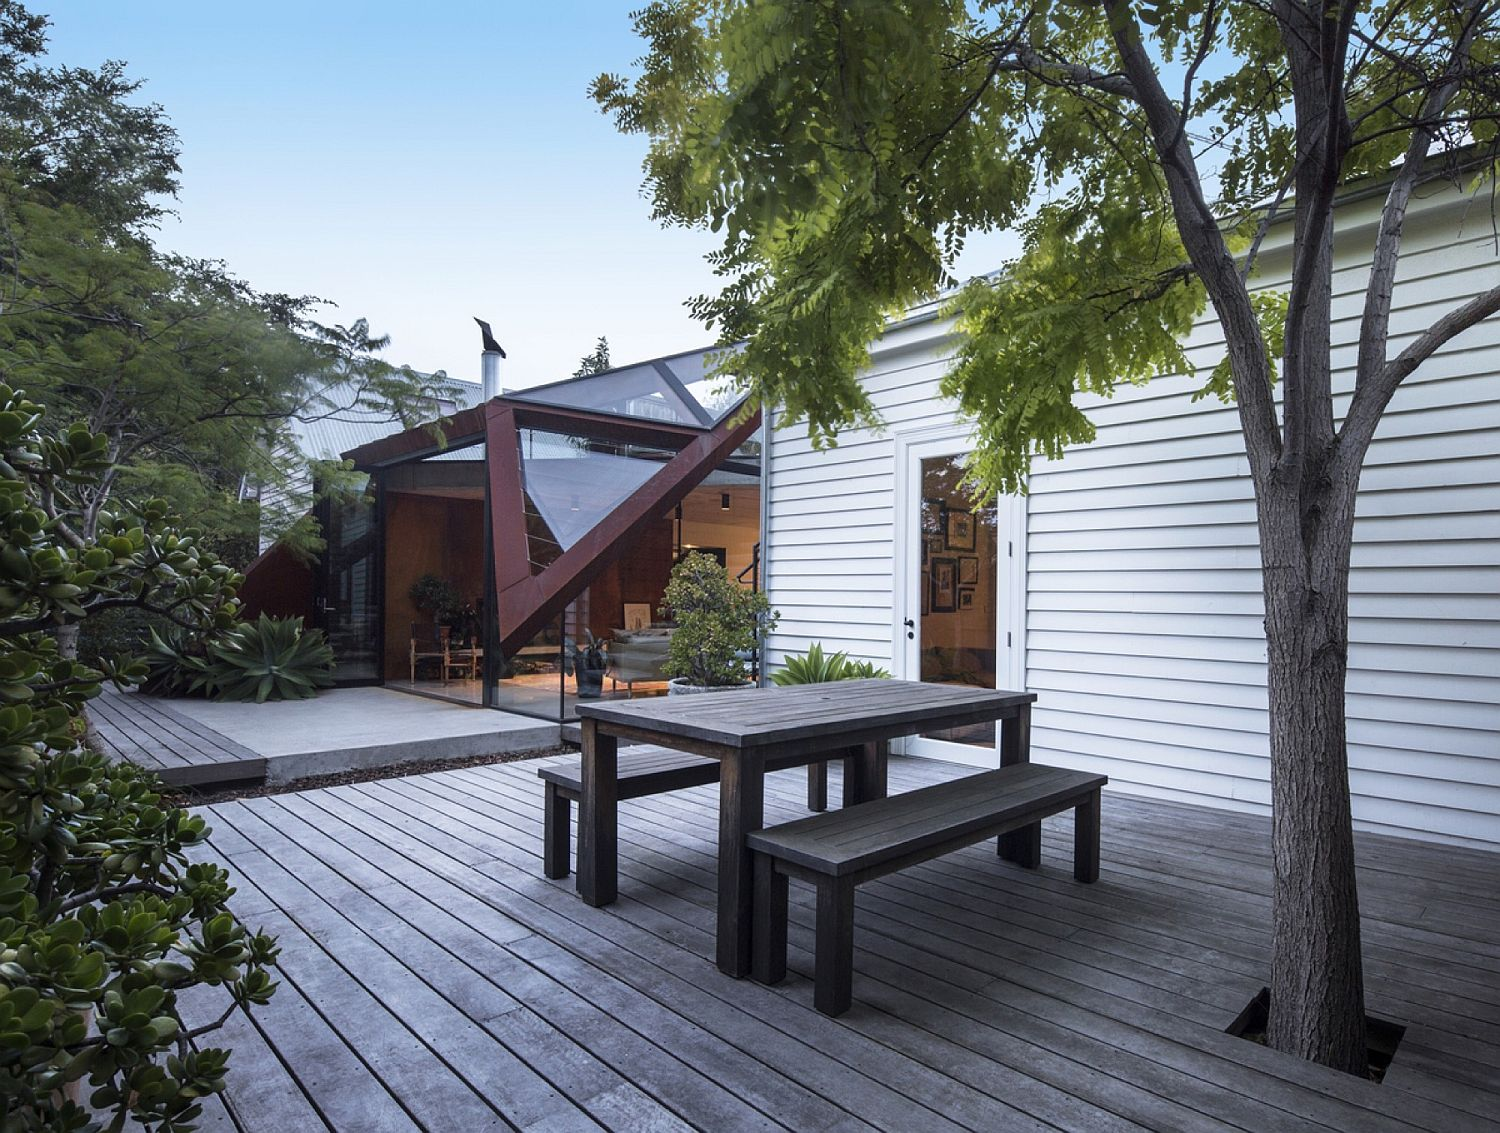 Wooden-deck-of-the-Melbourne-home-filled-with-greenery